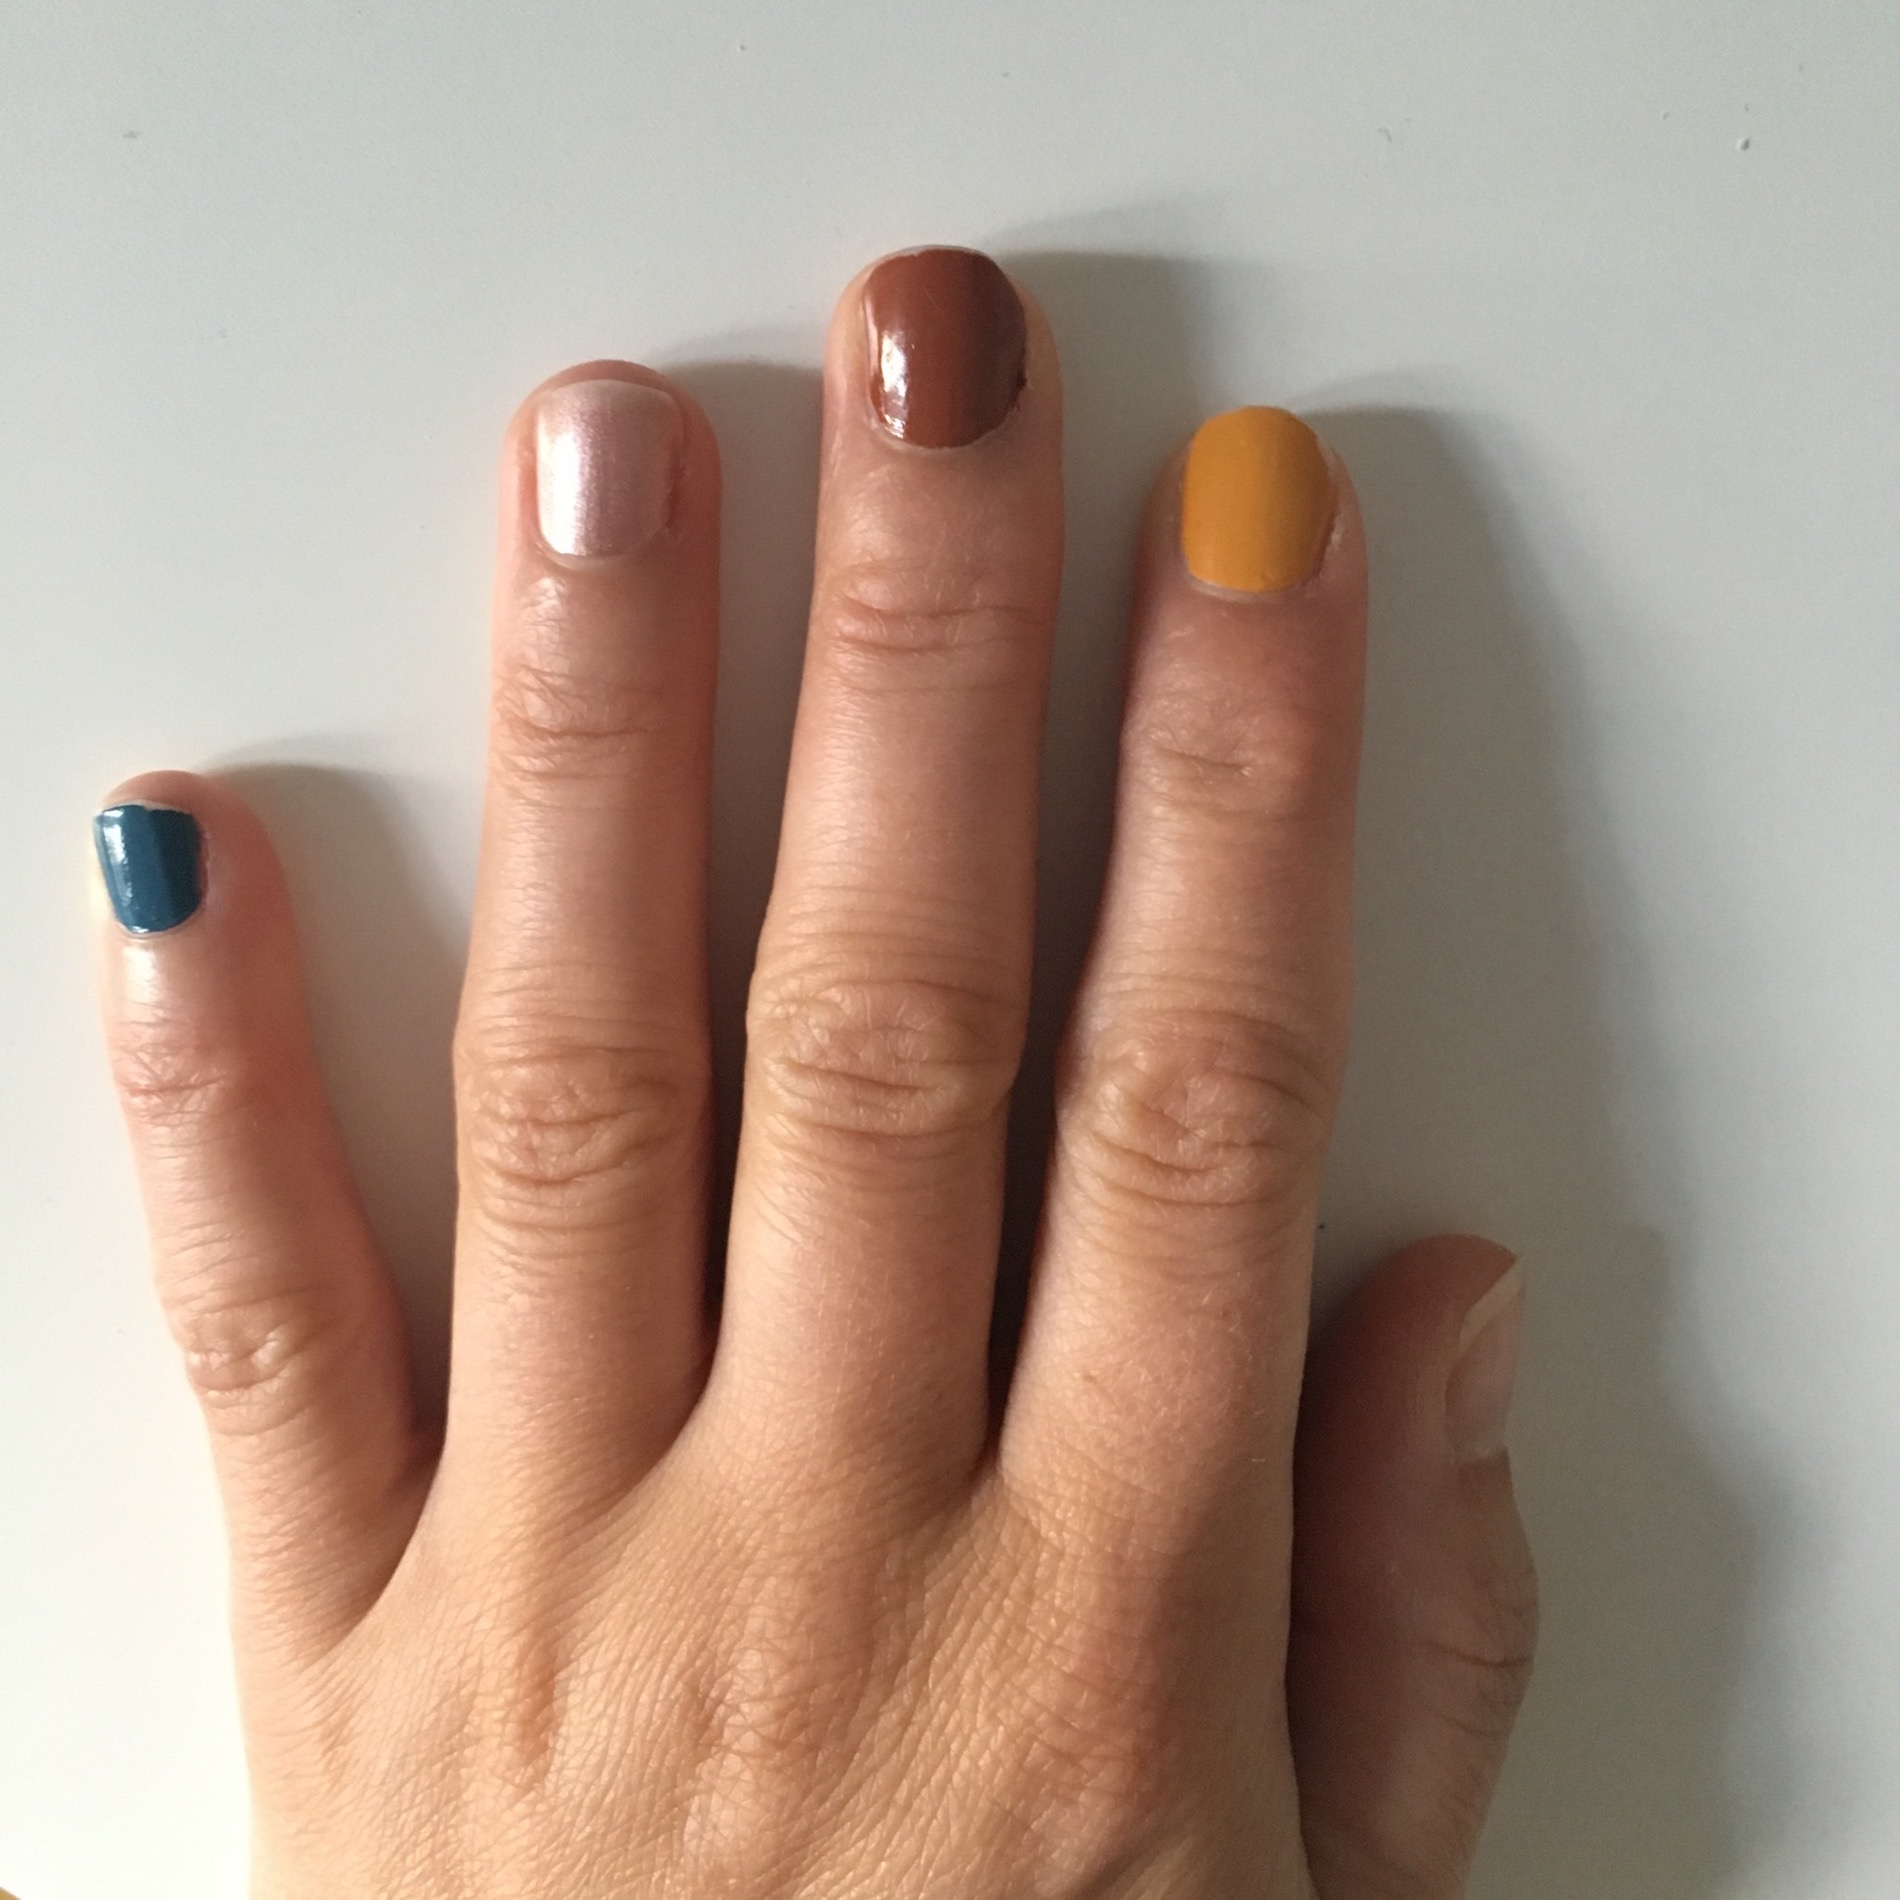 Bunt, bunt, bunt sind alle meine Nagellacke - Just a few things ...